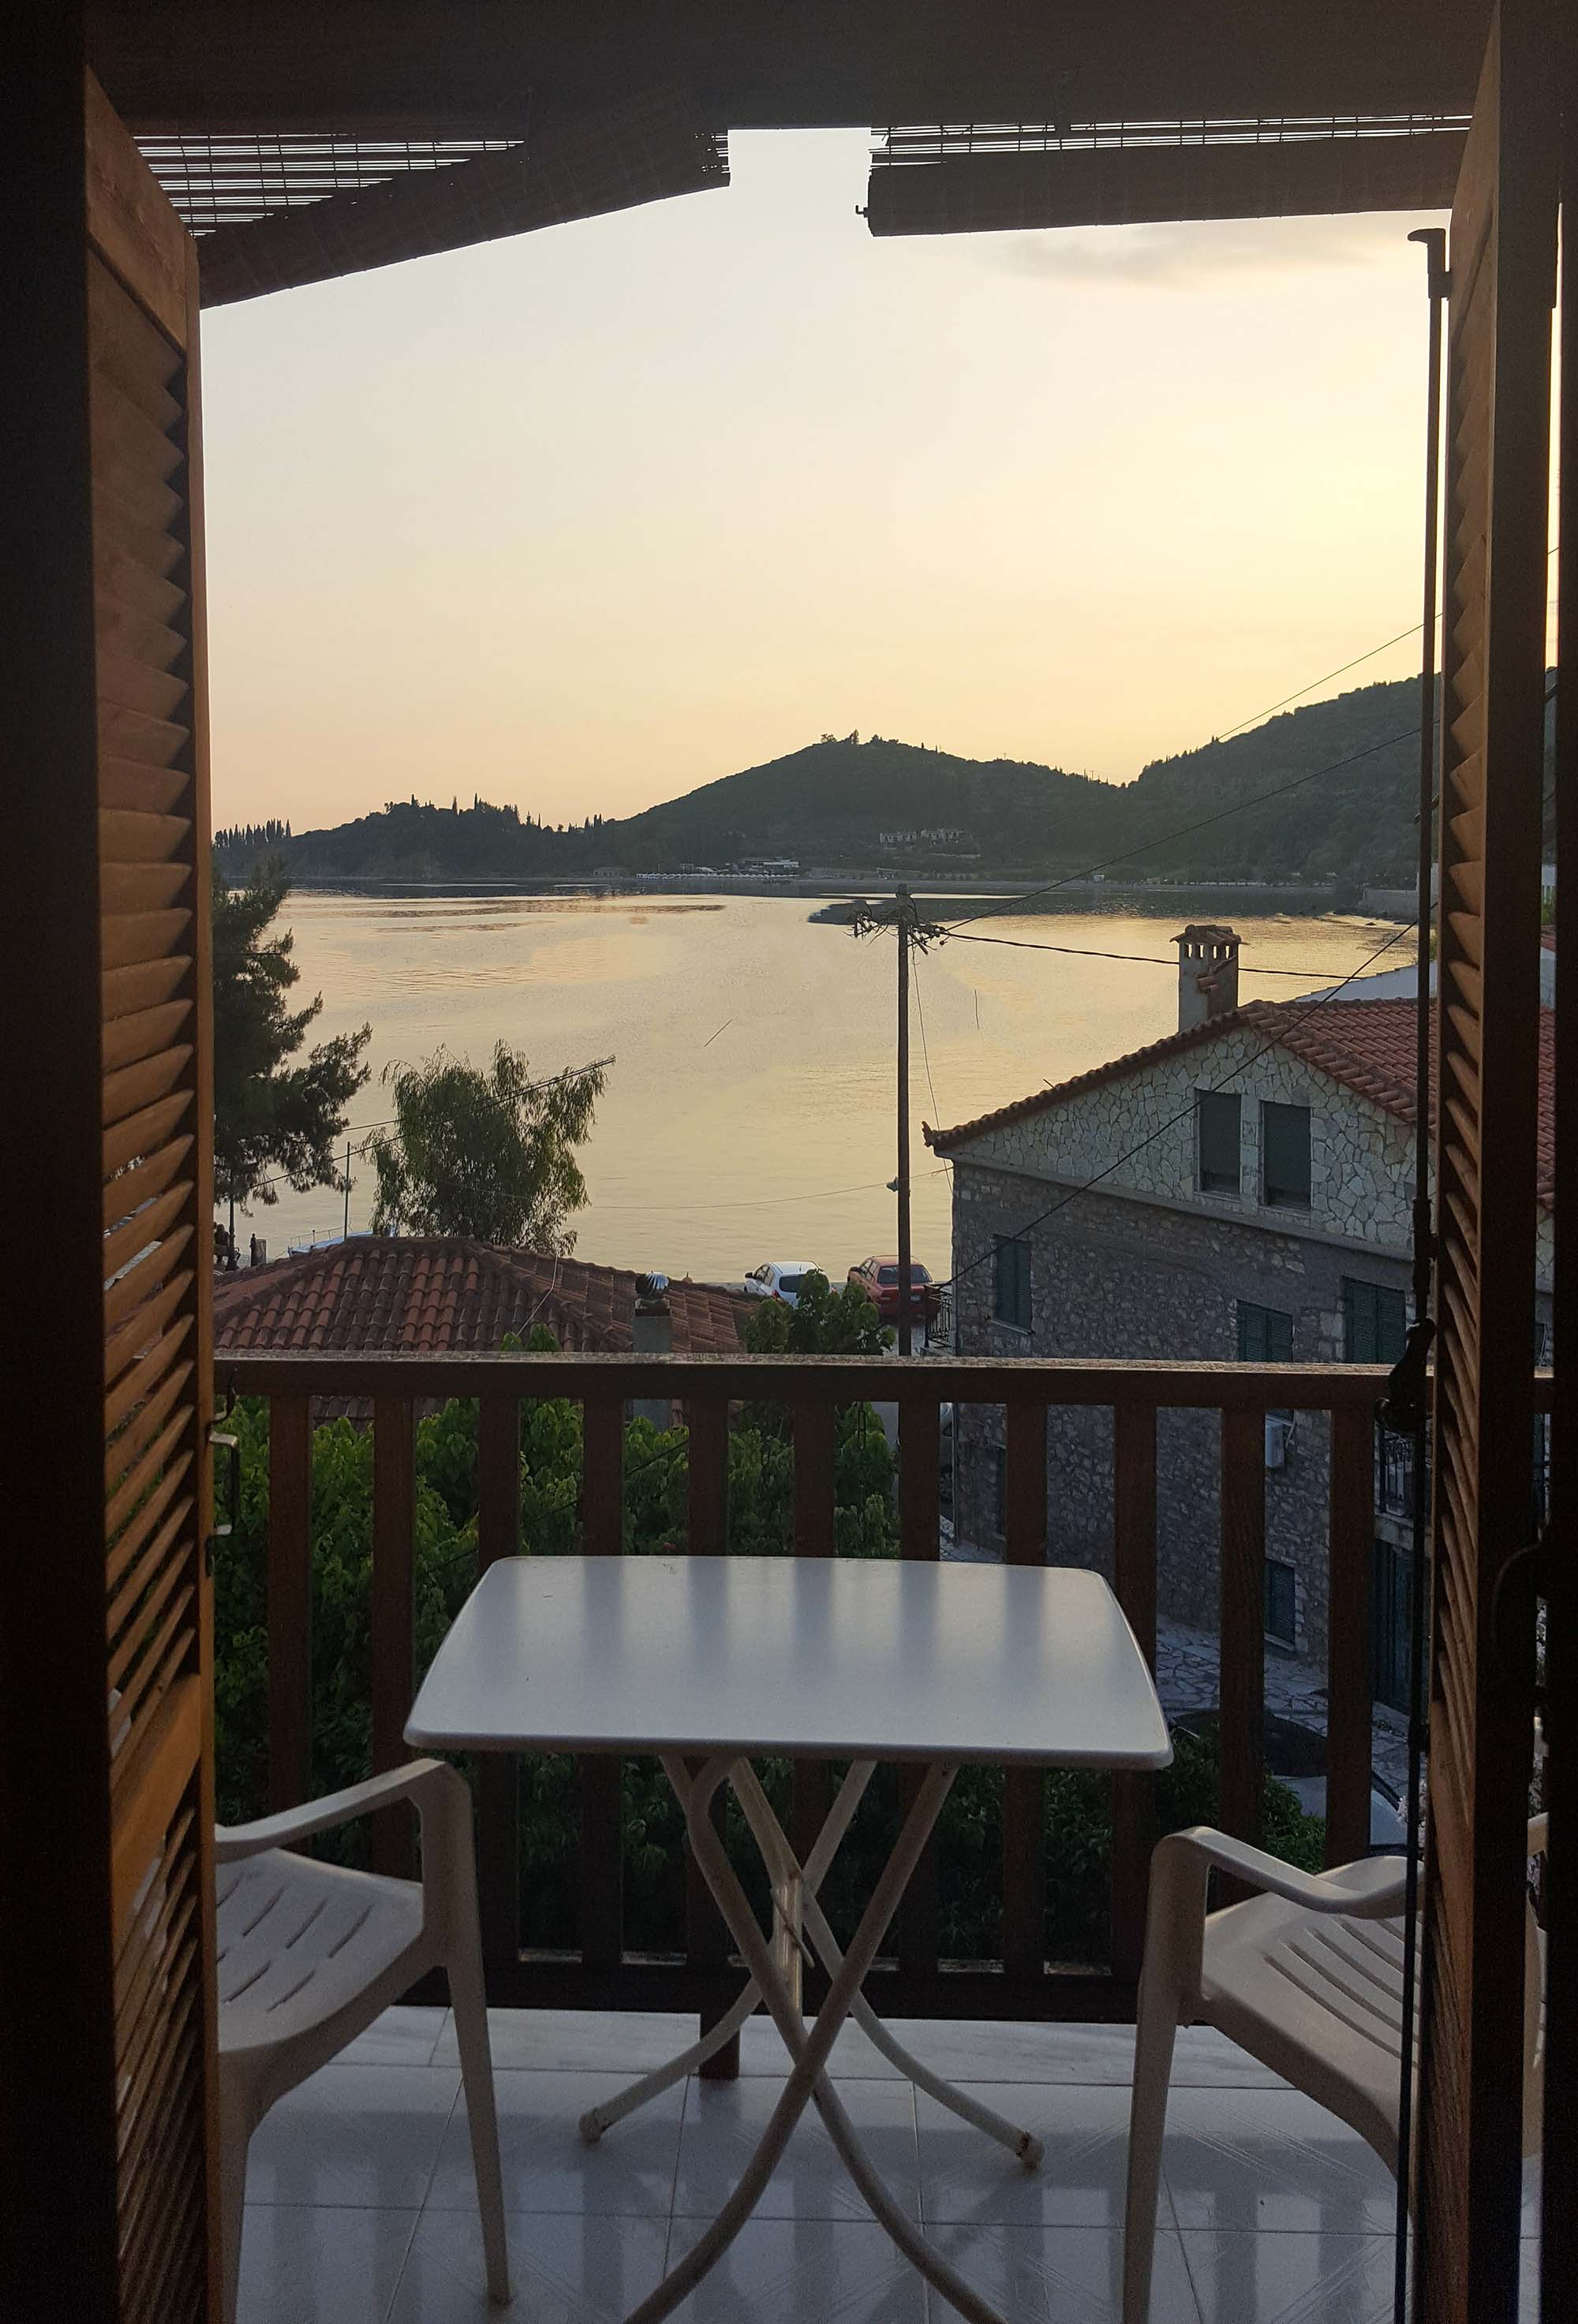 Monistiraki apartment balcony view with golden sea.jpg